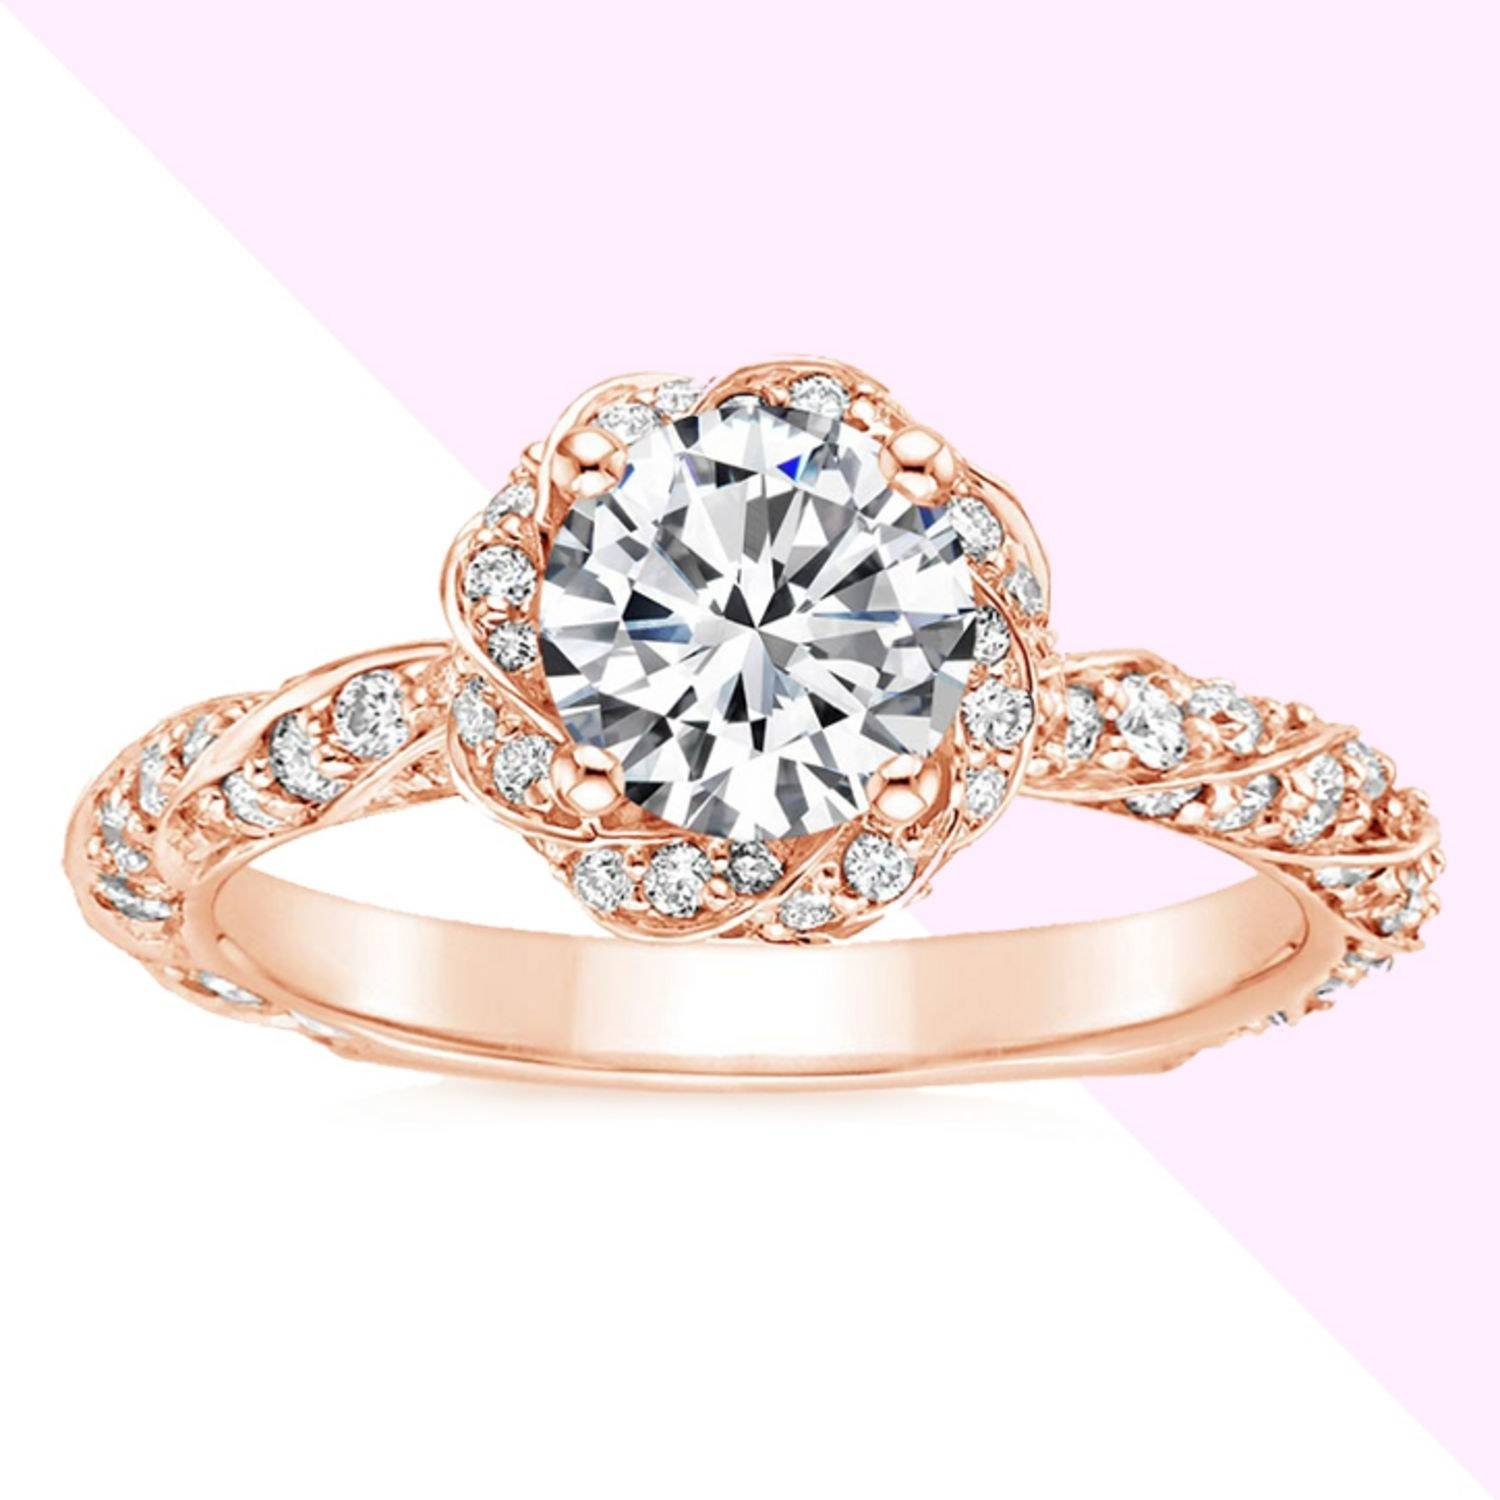 Engagement Rings: Tips On Buying Engagement Ring Bands, Affordable Regarding Wedding Rings With Engagement Rings (View 9 of 15)